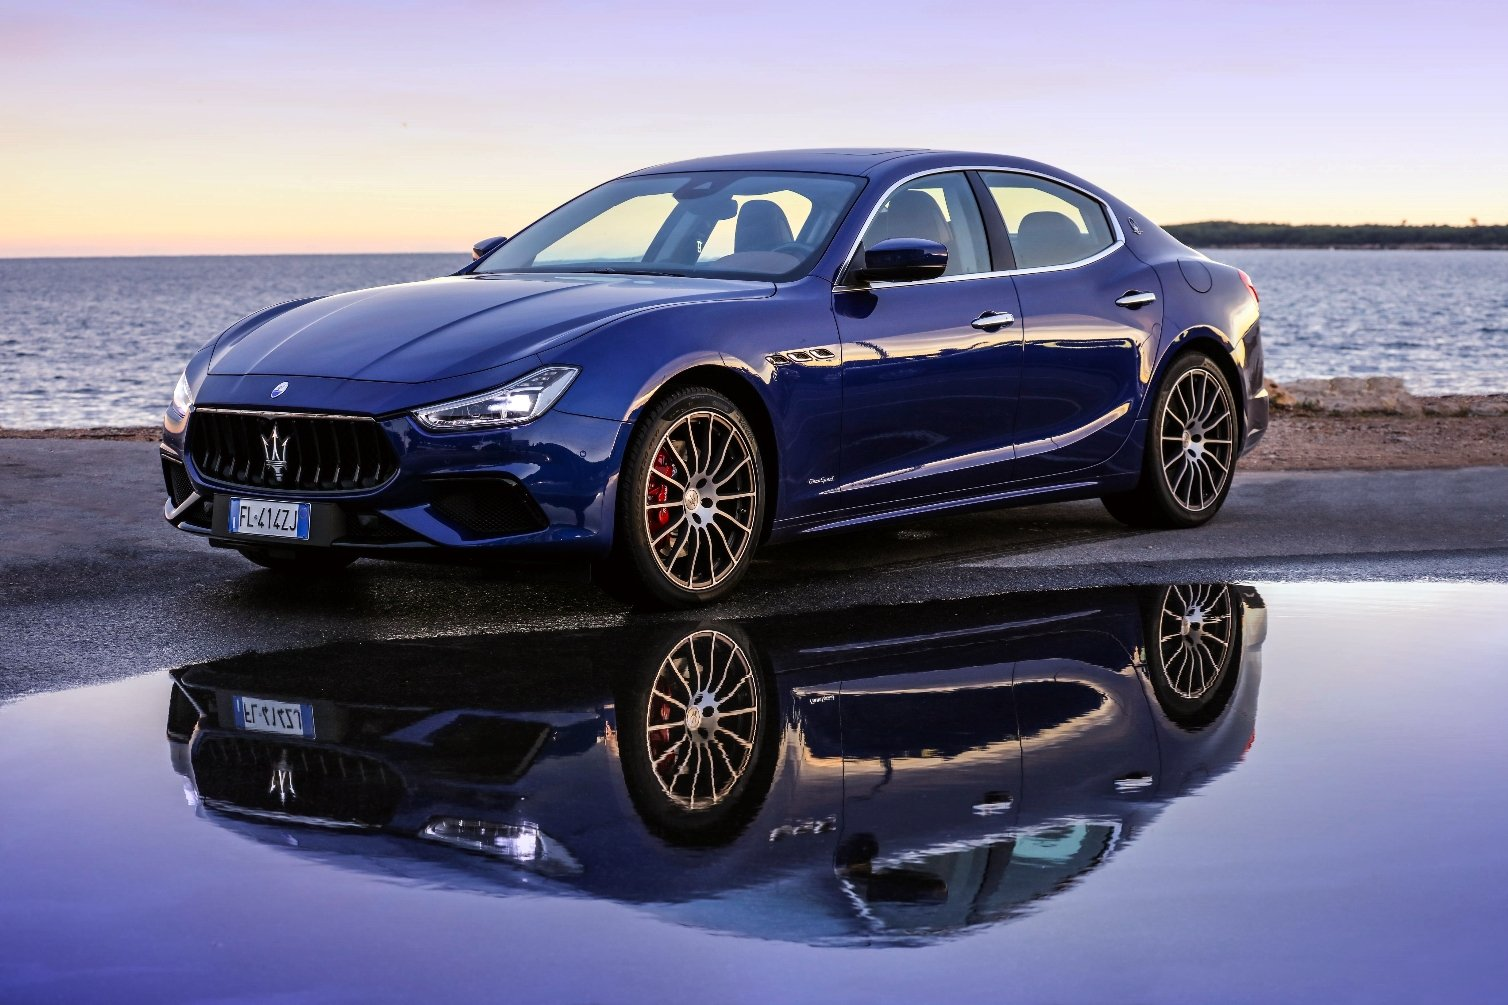 maserati boosts ghibli styling and performance for 2018. Black Bedroom Furniture Sets. Home Design Ideas